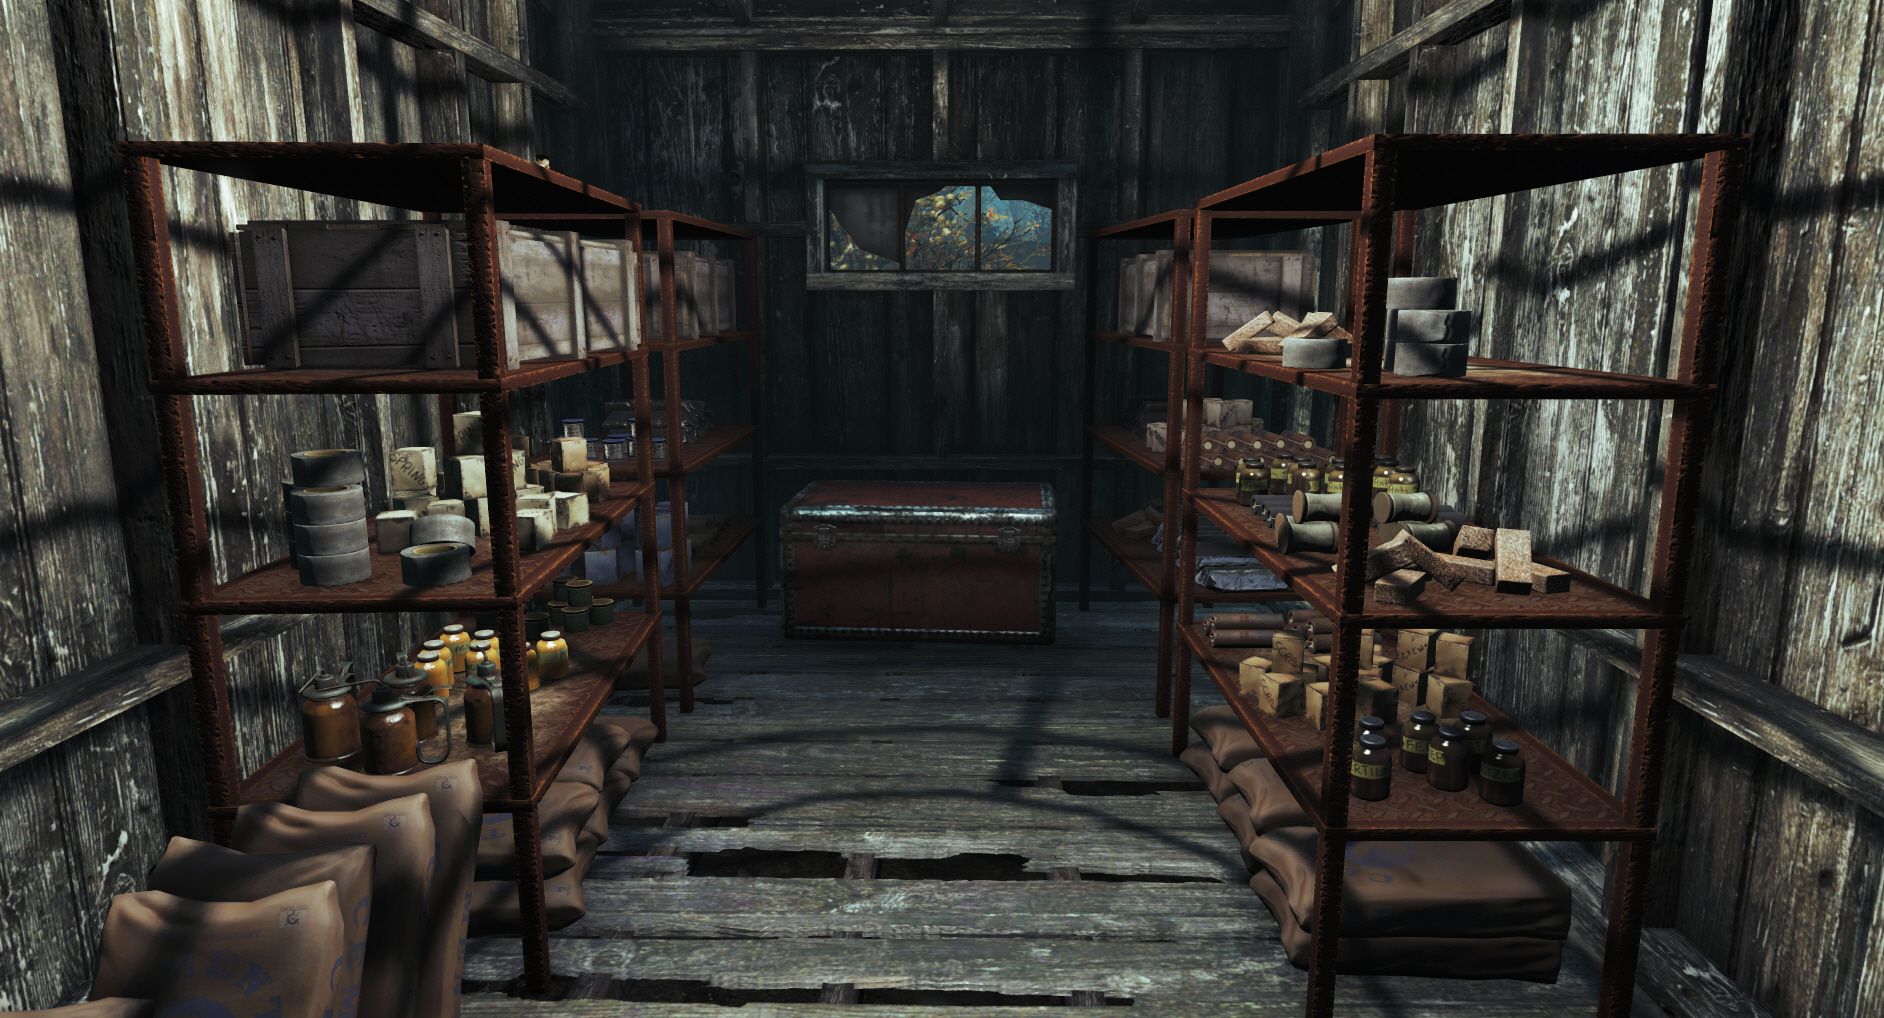 CranberryIslandShed-Interior-FarHarbor